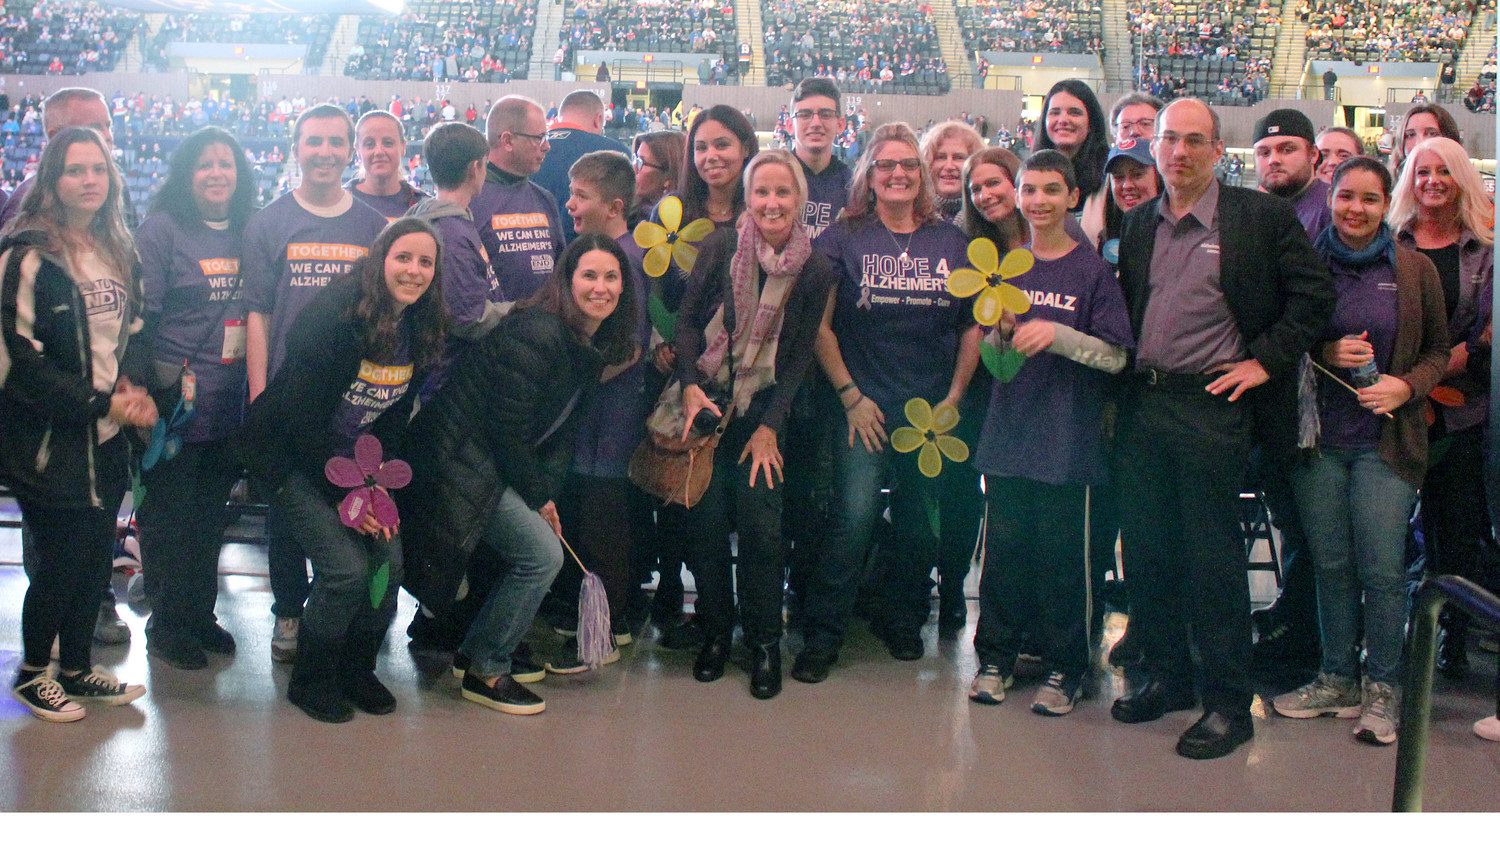 A group of people in purple — supporting the Long Island chapter of the Alzheimer's Association — stood out in a sea of blue and orange at the New York Islanders' game at Nassau Coliseum on Jan. 3, which was designated Alzheimer's Awareness Night at the arena.